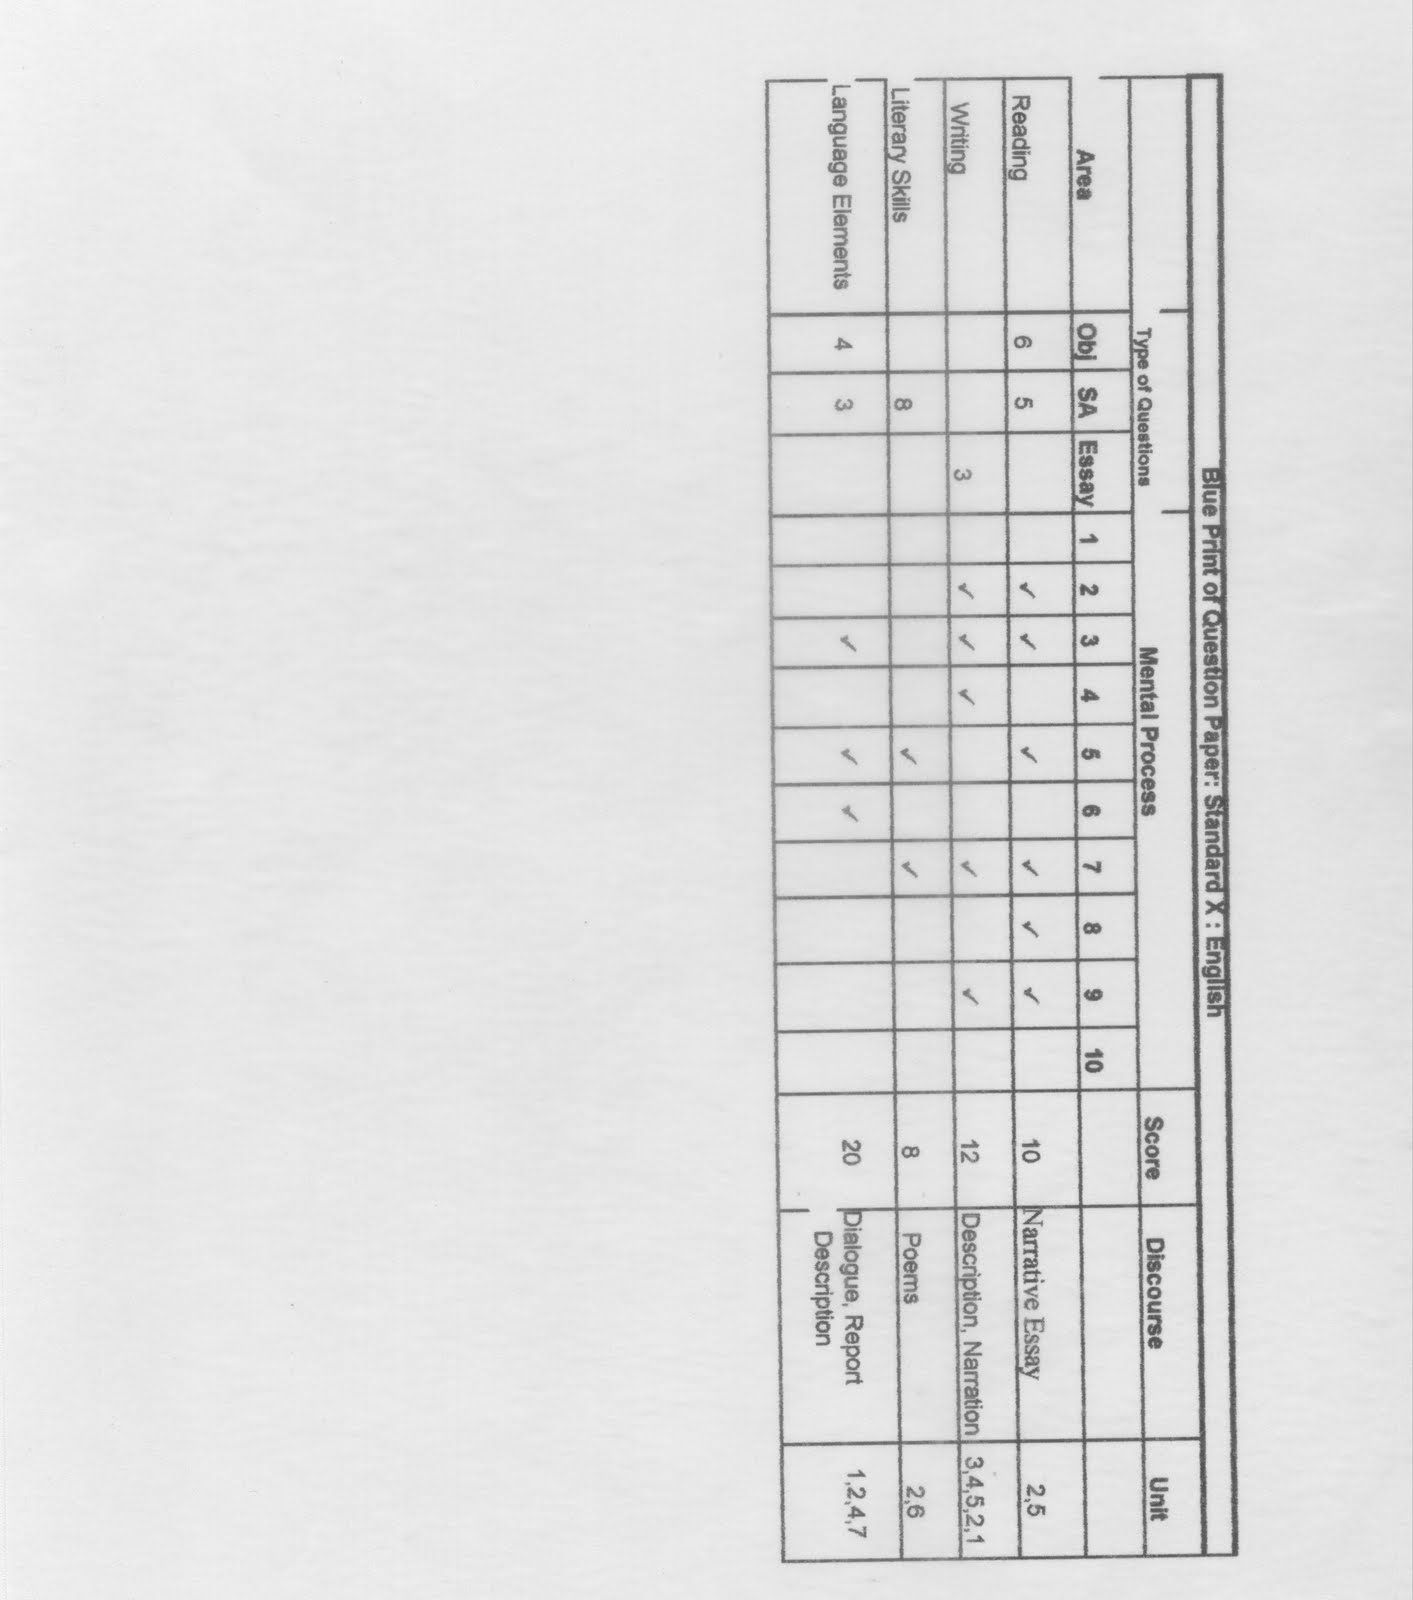 Kuetef 26 sample question paper blue print this sample question paper blue print file was typed using excel but on finding it difficult to upload on this blog it was converted to a jpeg file malvernweather